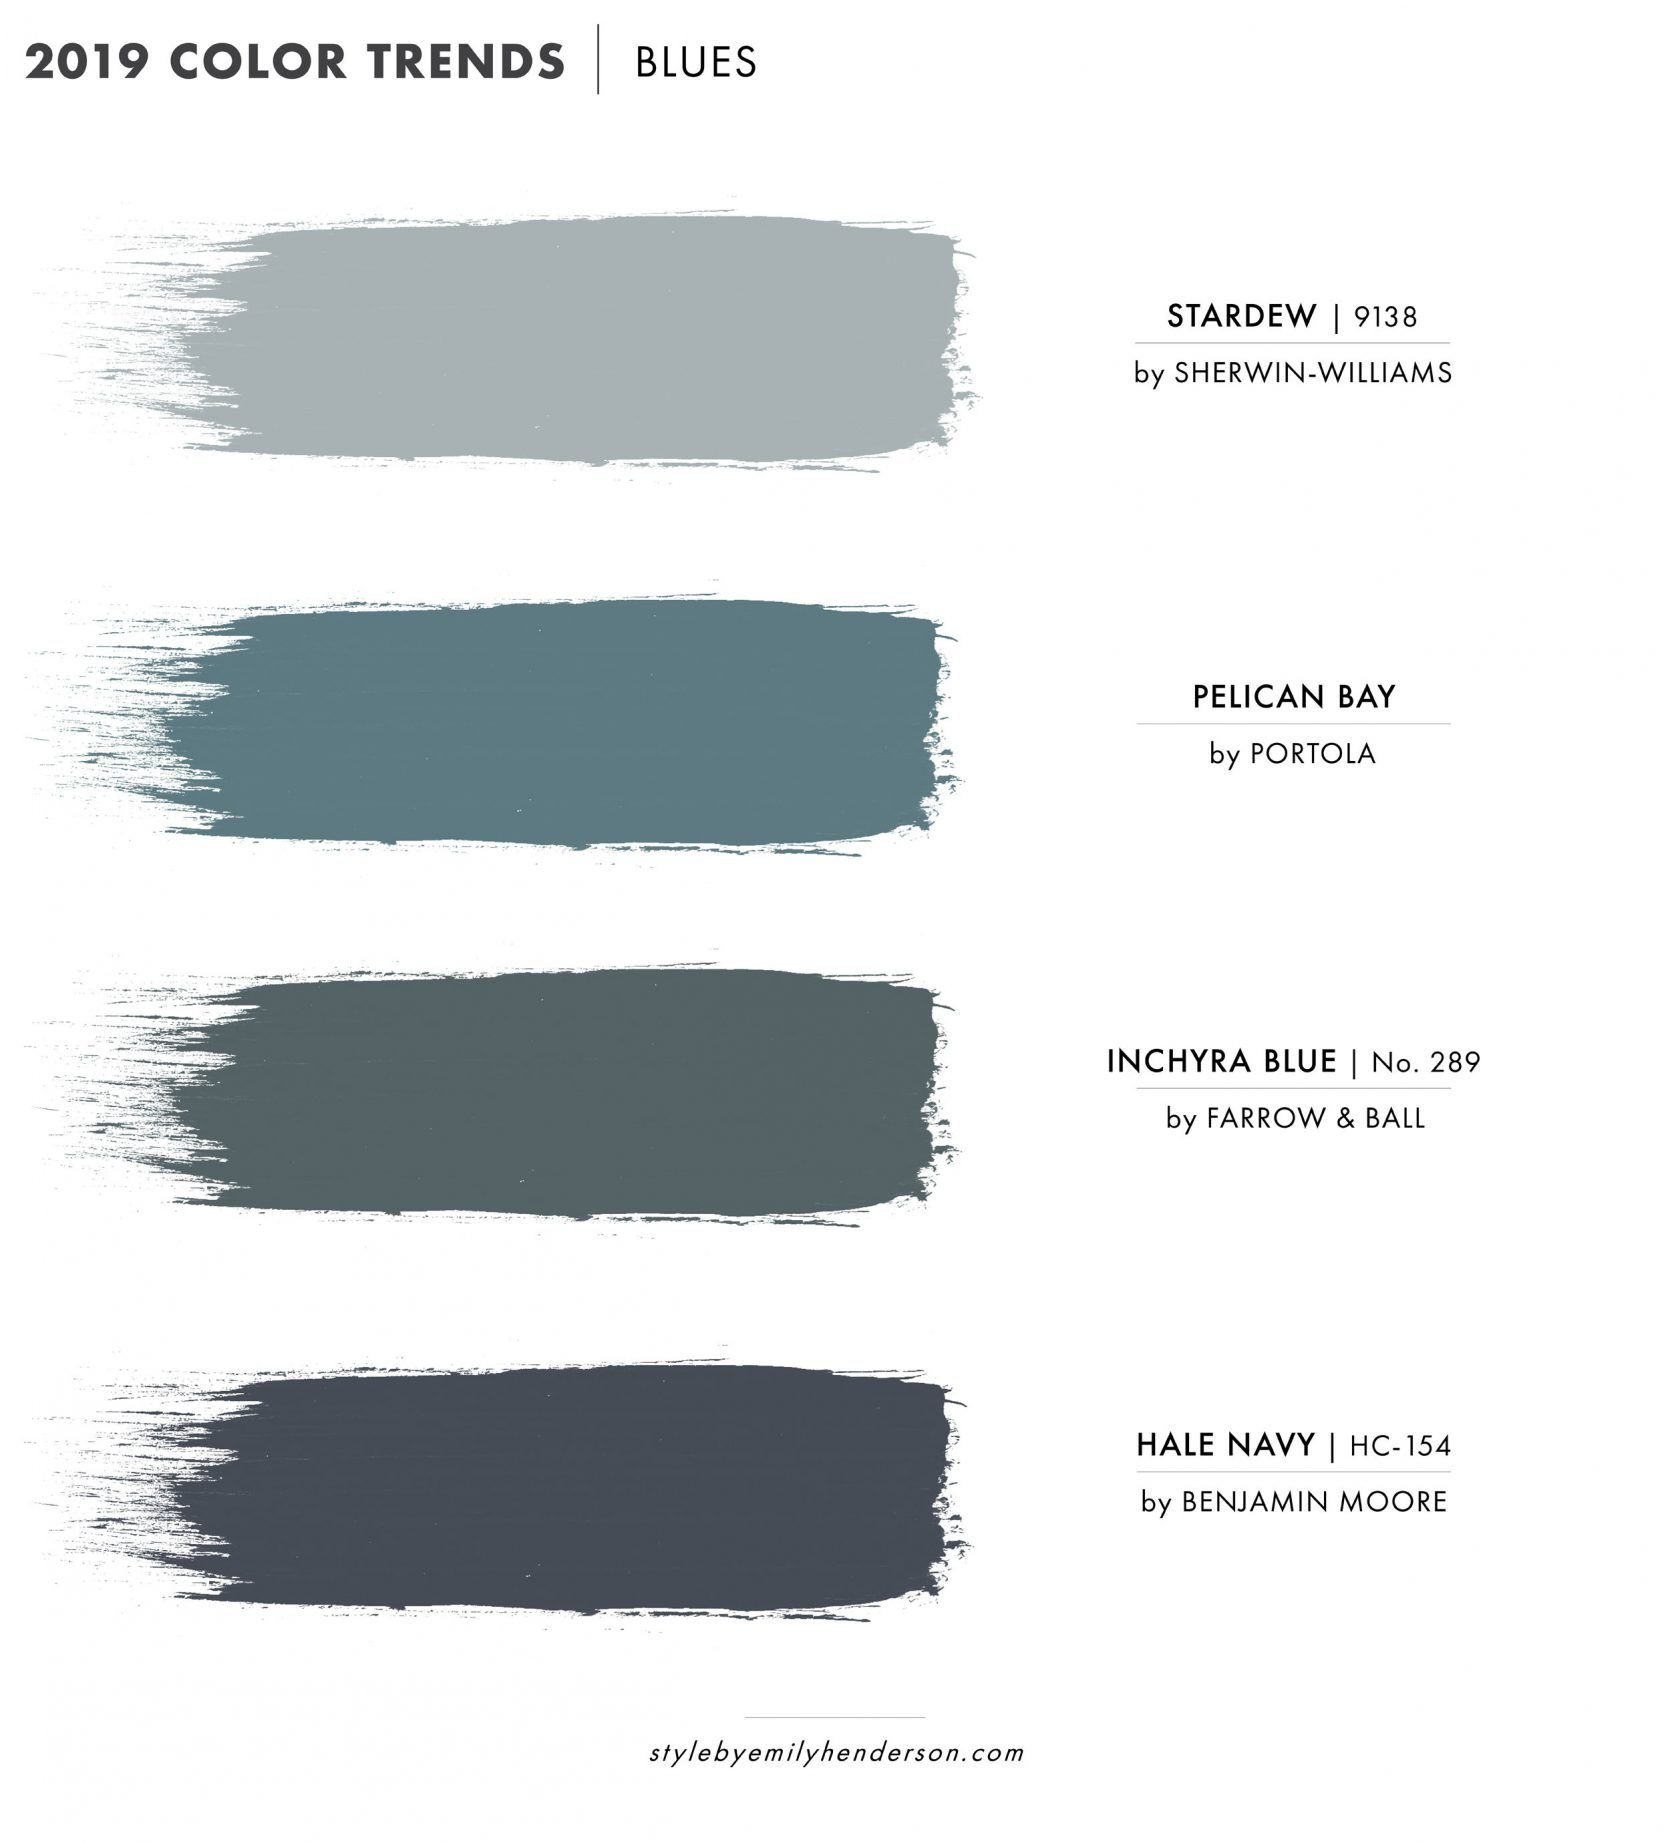 2019 Paint Color Trends images